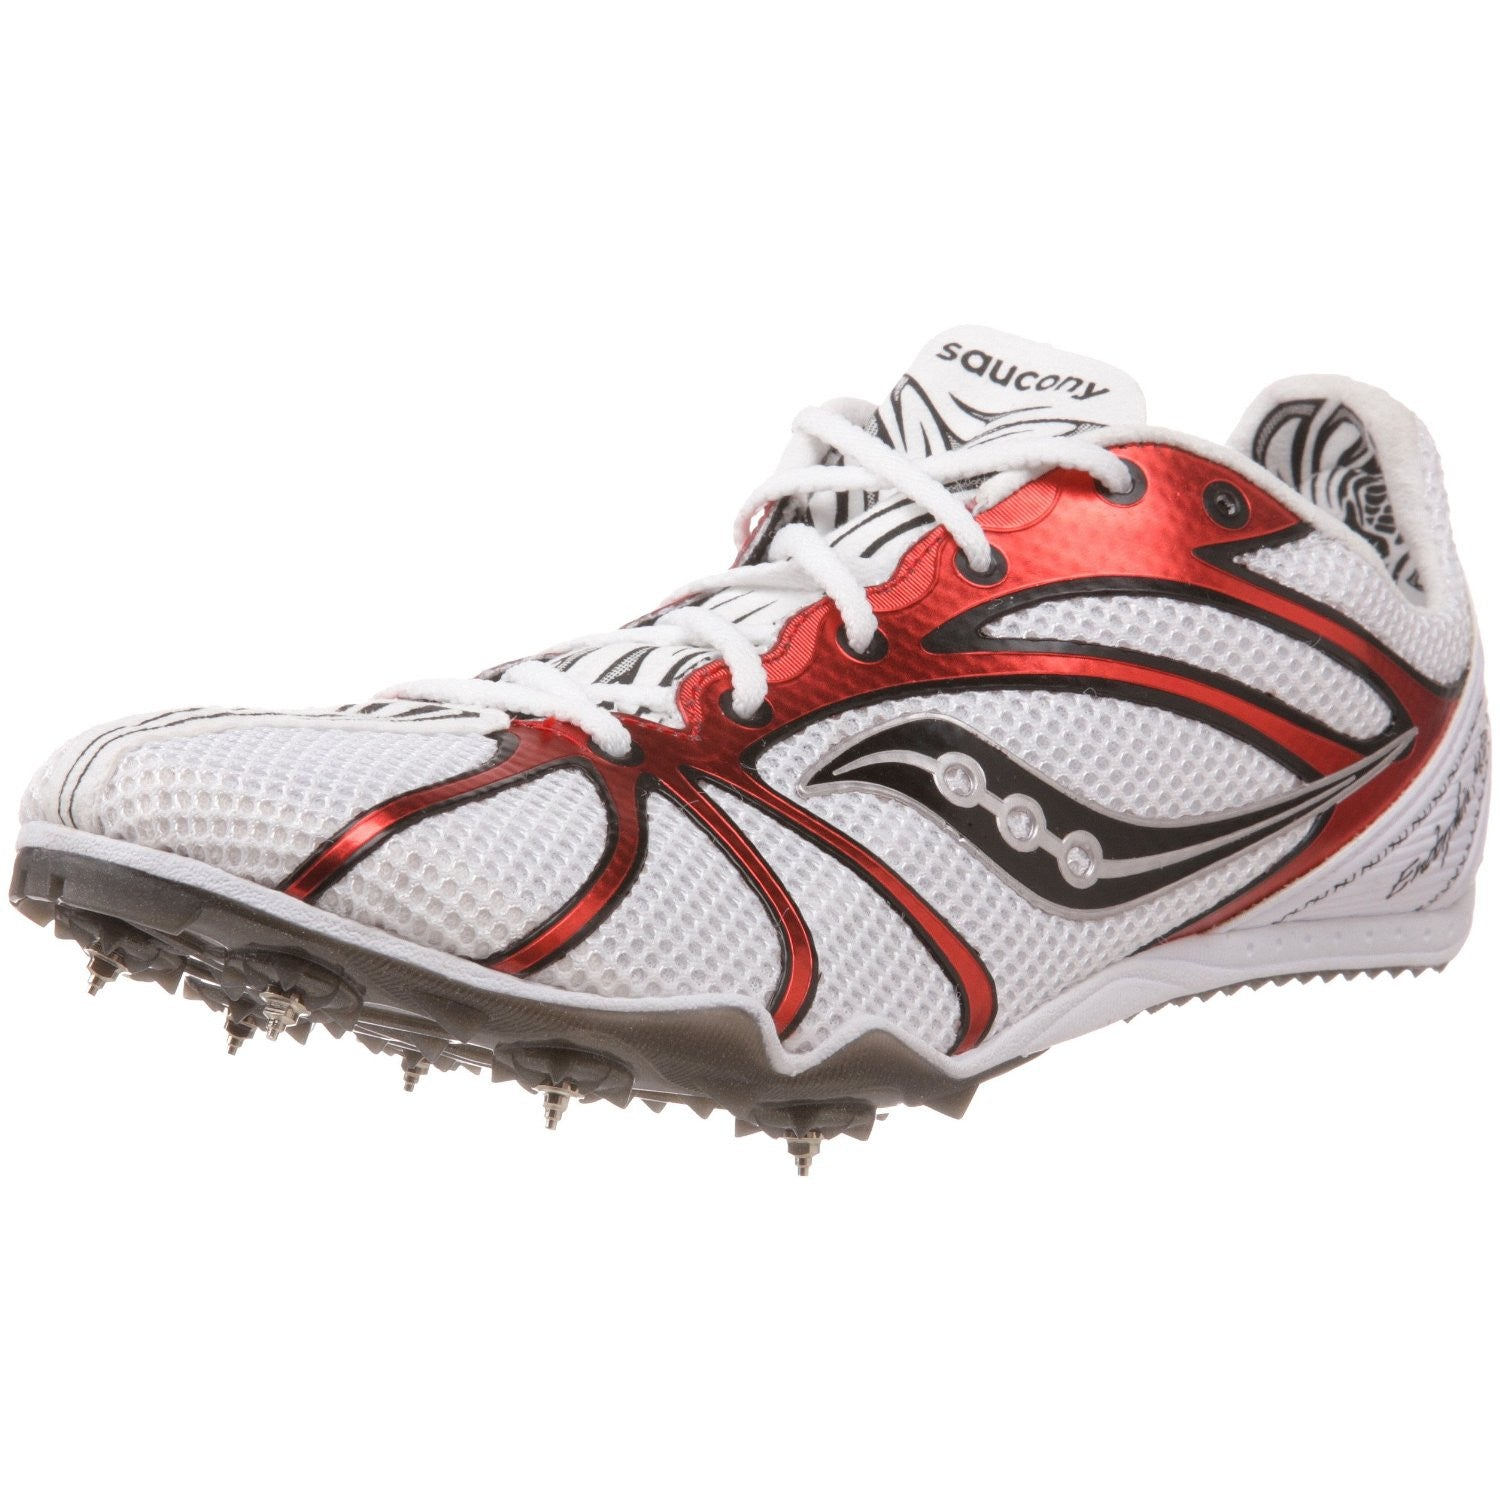 Men's Saucony Endorphin Spike MD2 Track